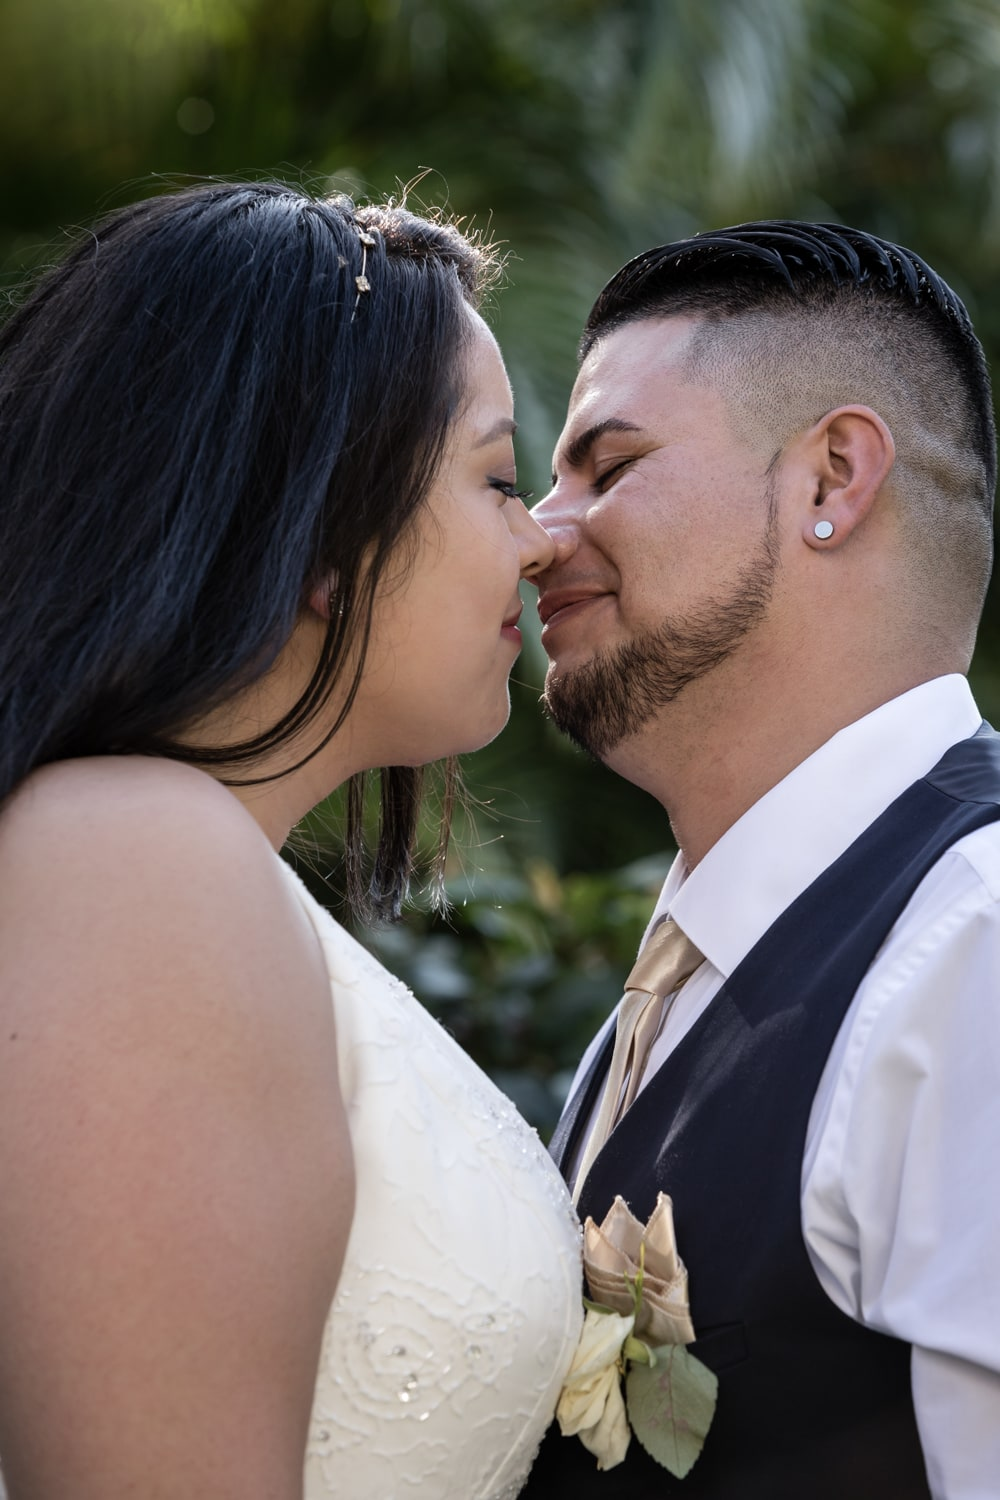 Couples first kiss as husband and wife after tying the knot.